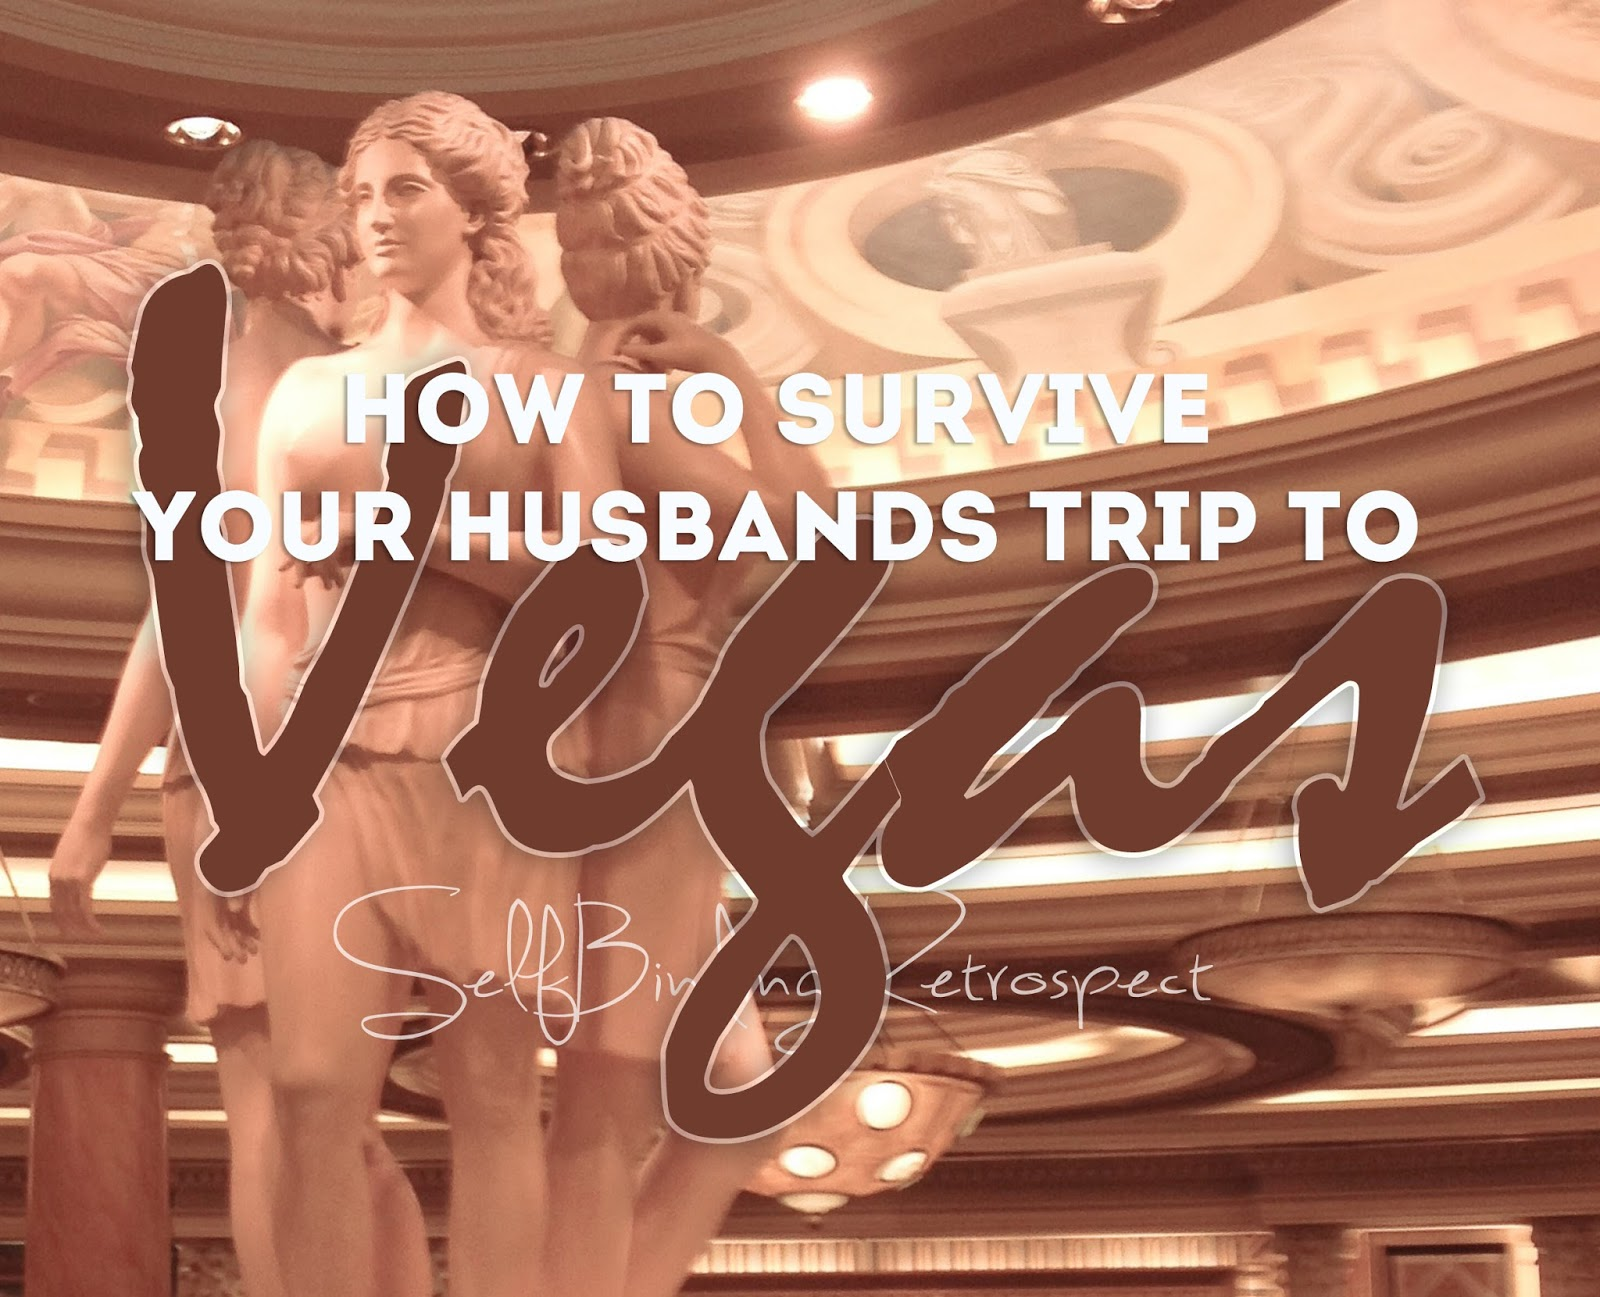 How to survive your husbands trip to Vegas - SelfBinding Retrospect by Alanna Rusnak